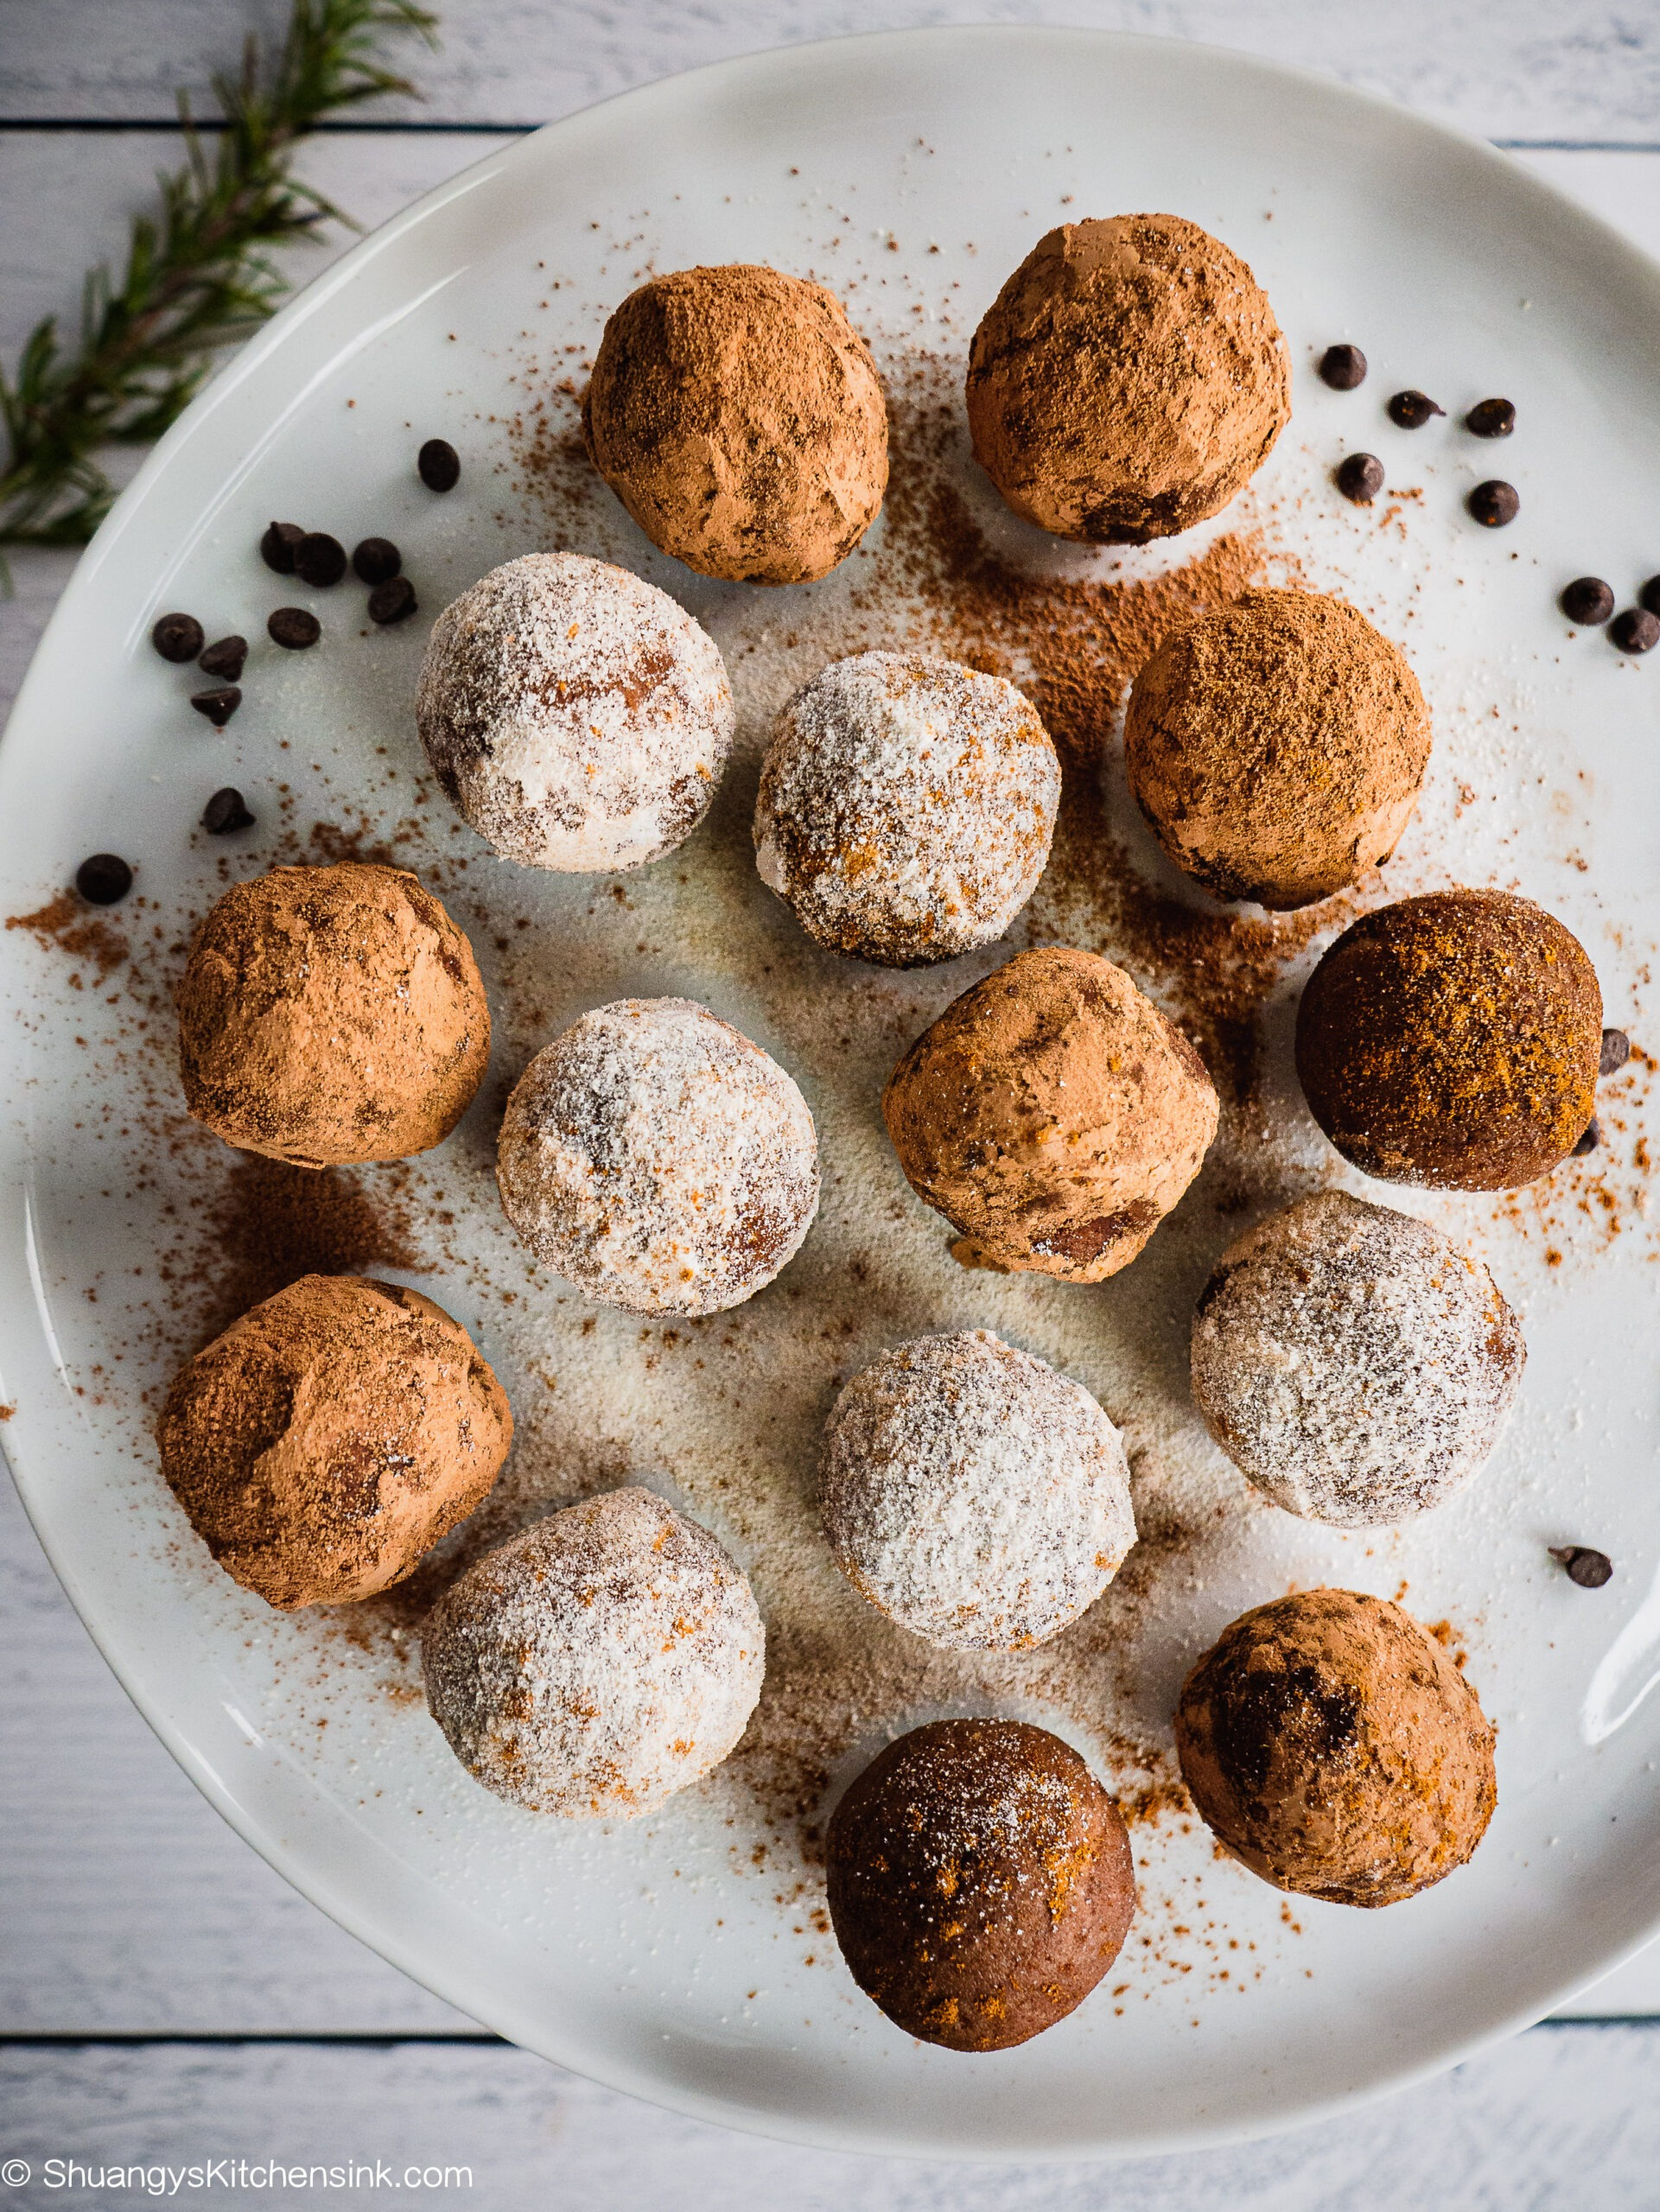 A plate of gingerbread chocolate truffles. Some are covered with coconut flour some are covered with cacao powder. There are christmas lights in the background.